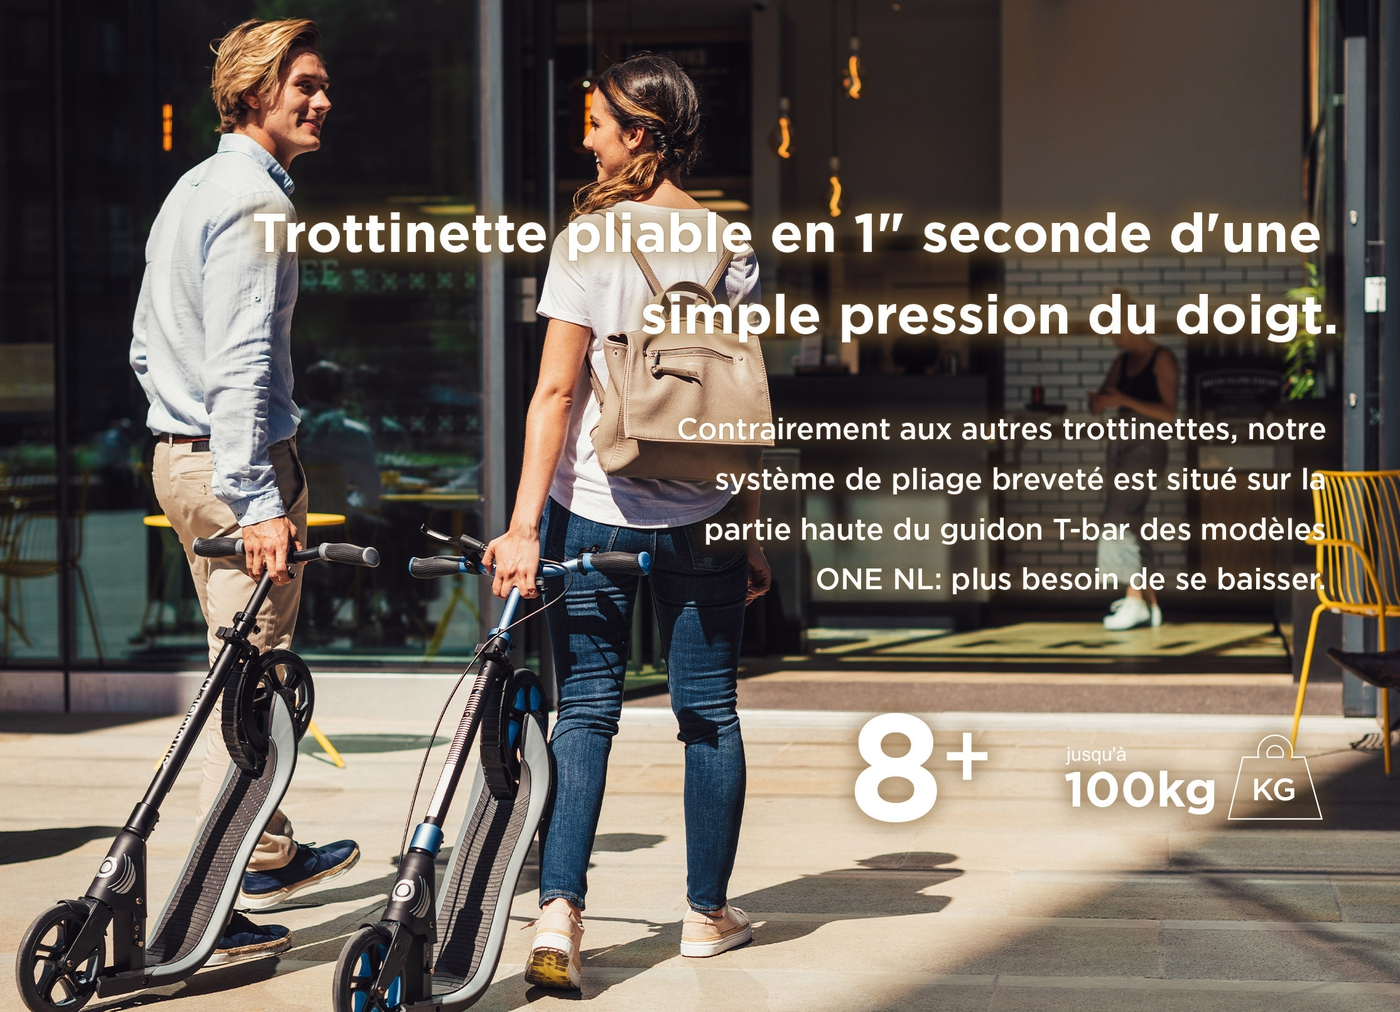 Trottinette pliable en 1 seconde d'une simple pression du doigt.